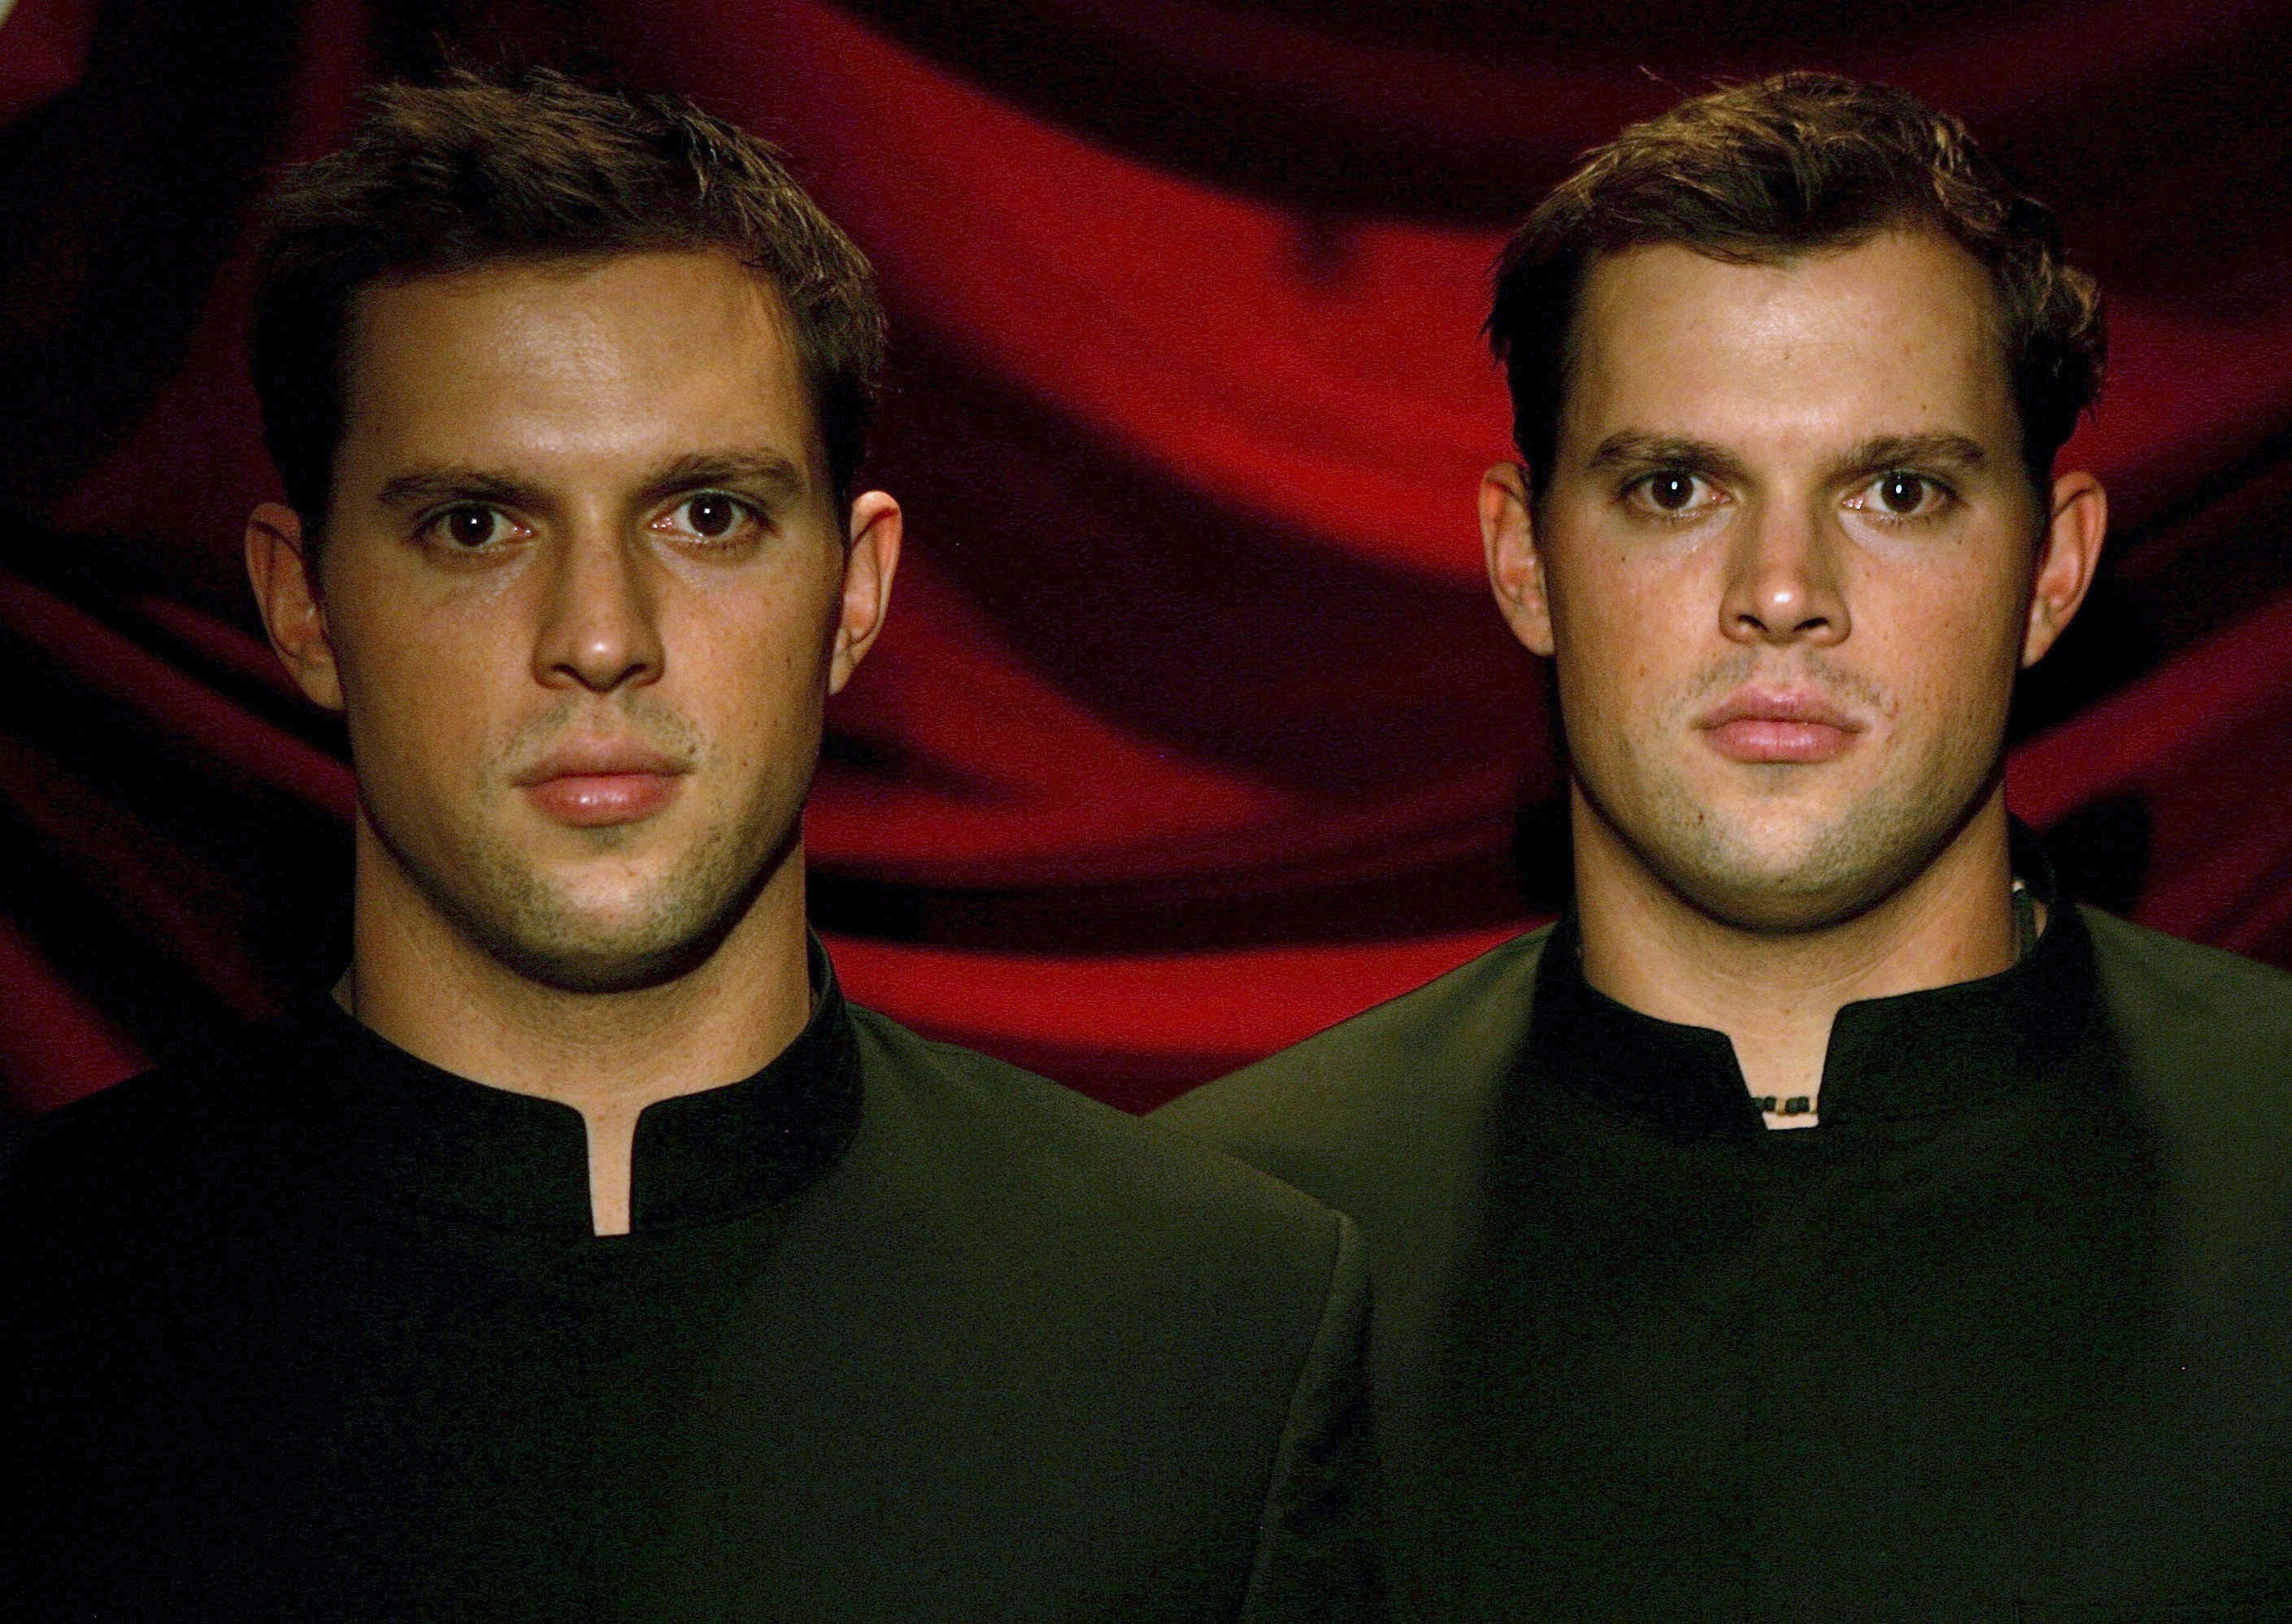 Mike and Bob Bryan for a portrait pose before the opening ceremony.